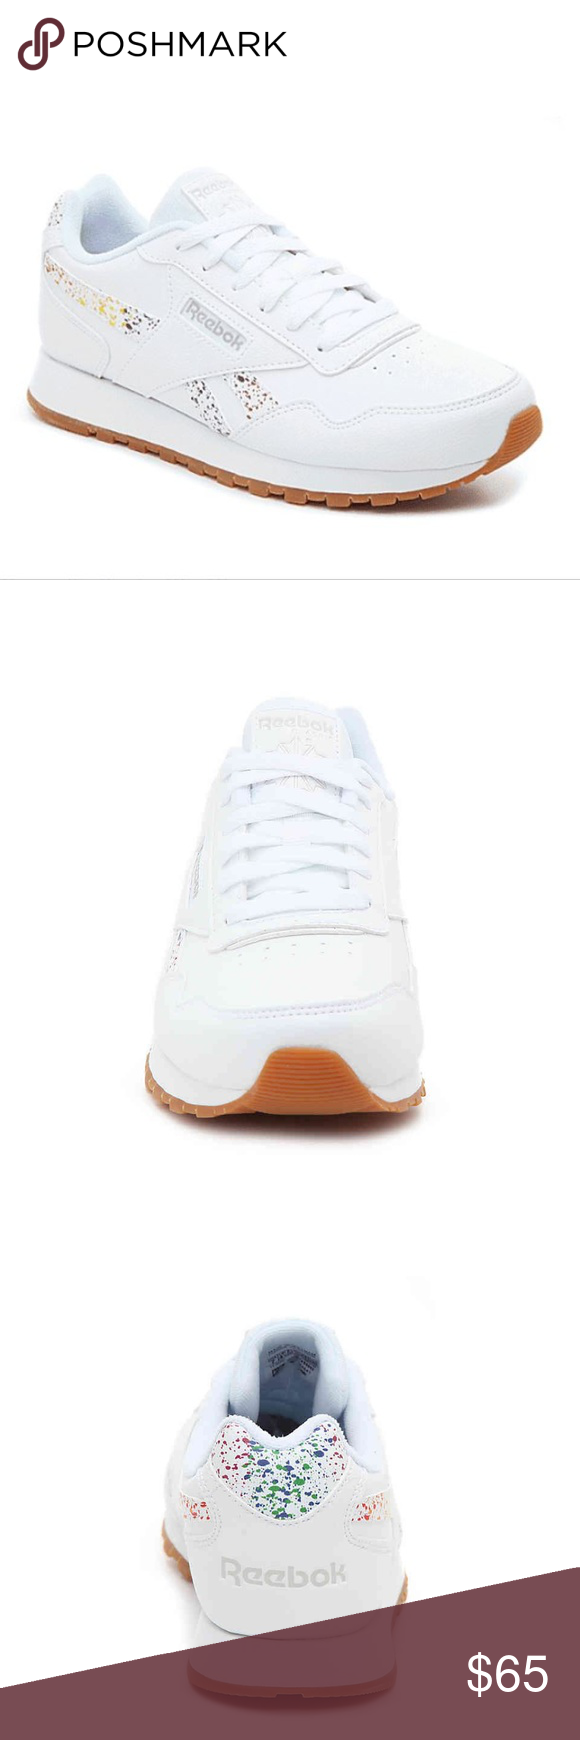 a0493c23 REEBOK PRIDE HARMAN RUN SNEAKER - WOMEN'S Brand new with tags. These ...